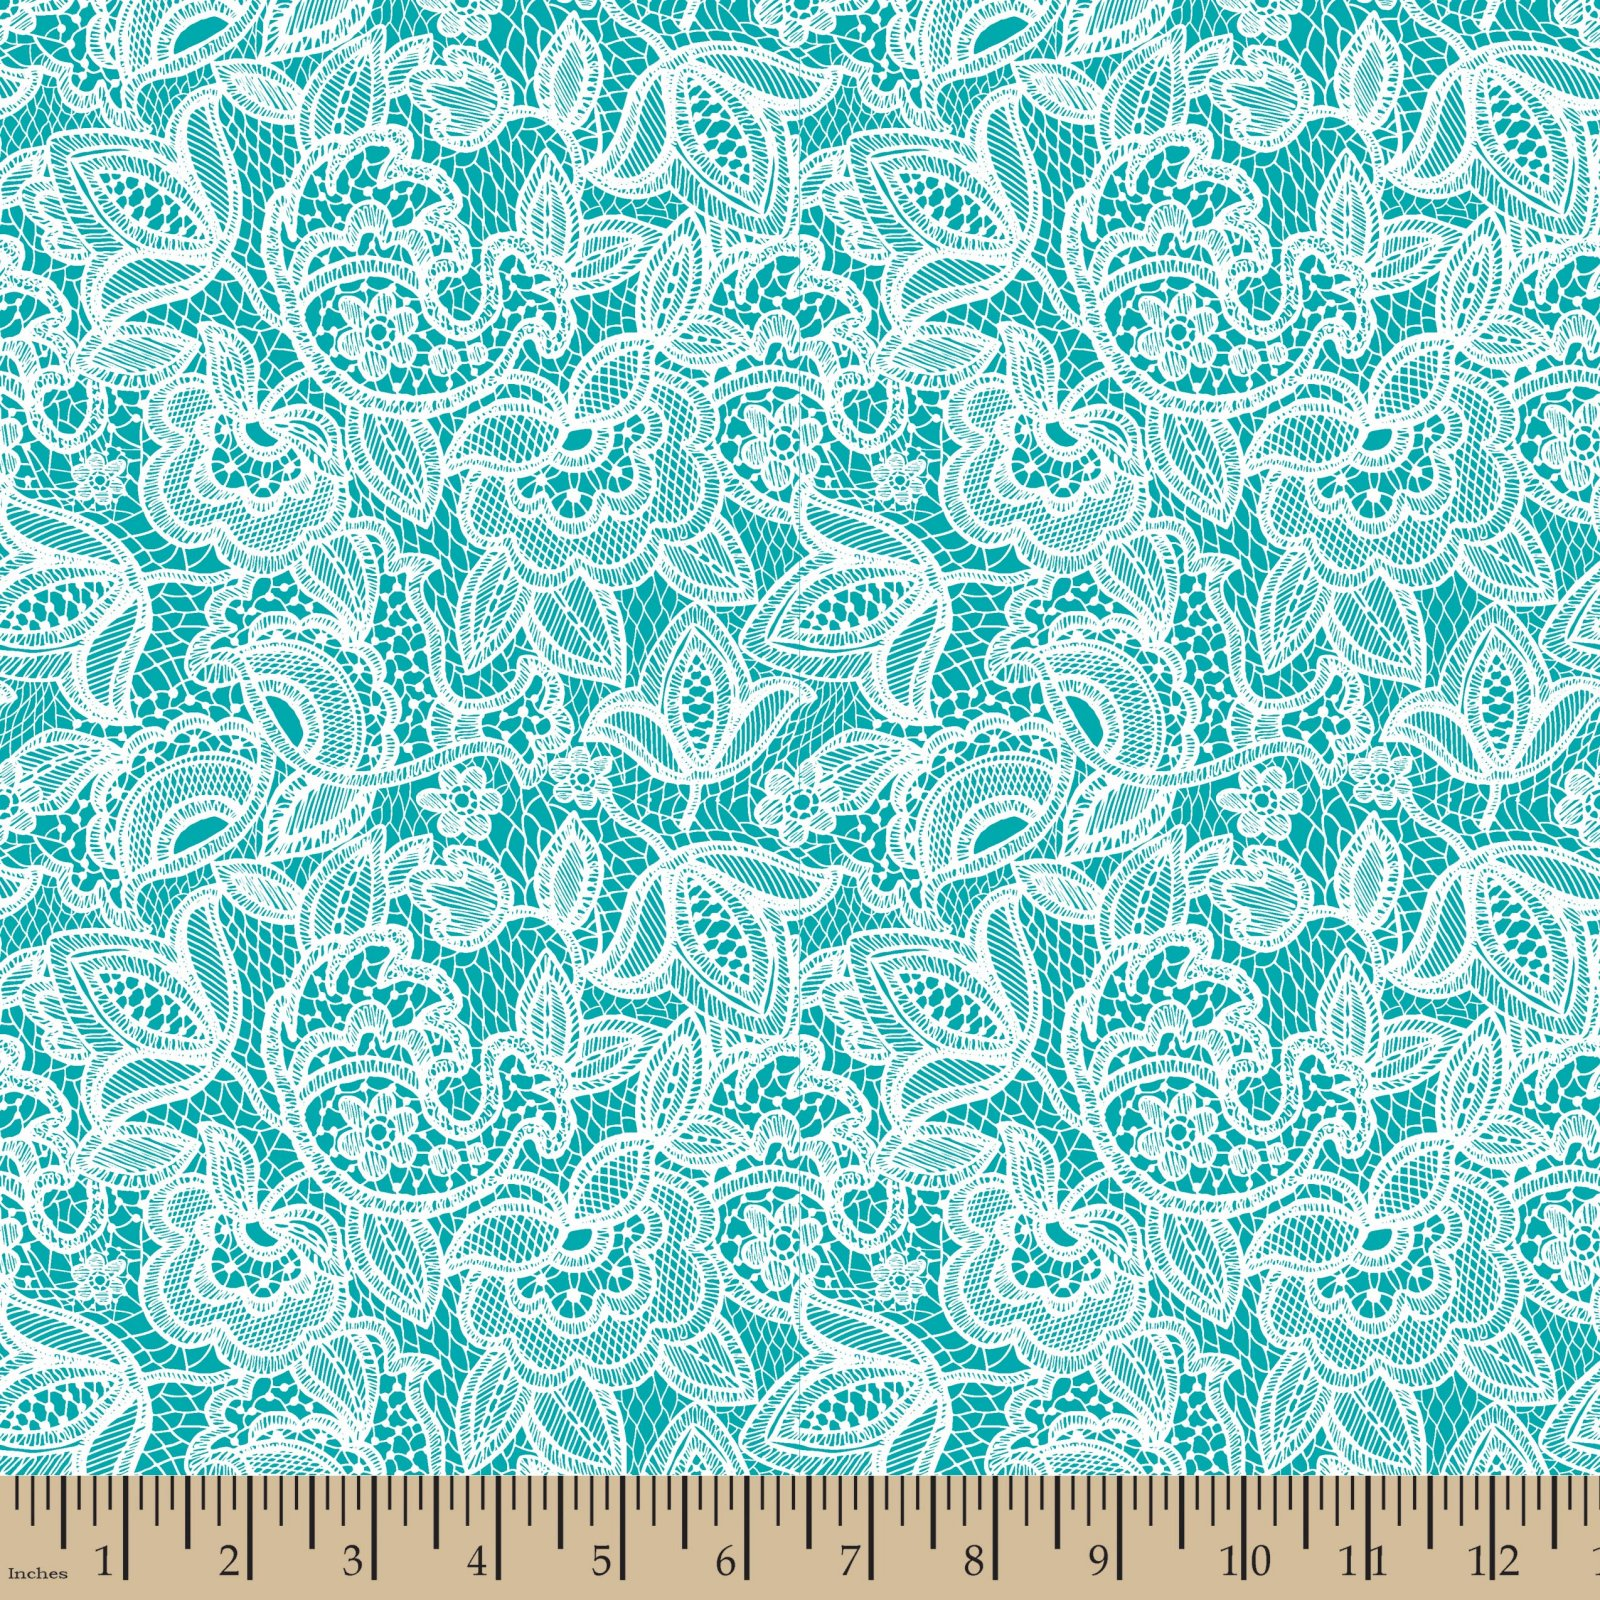 Embroidered Lace Turquoise